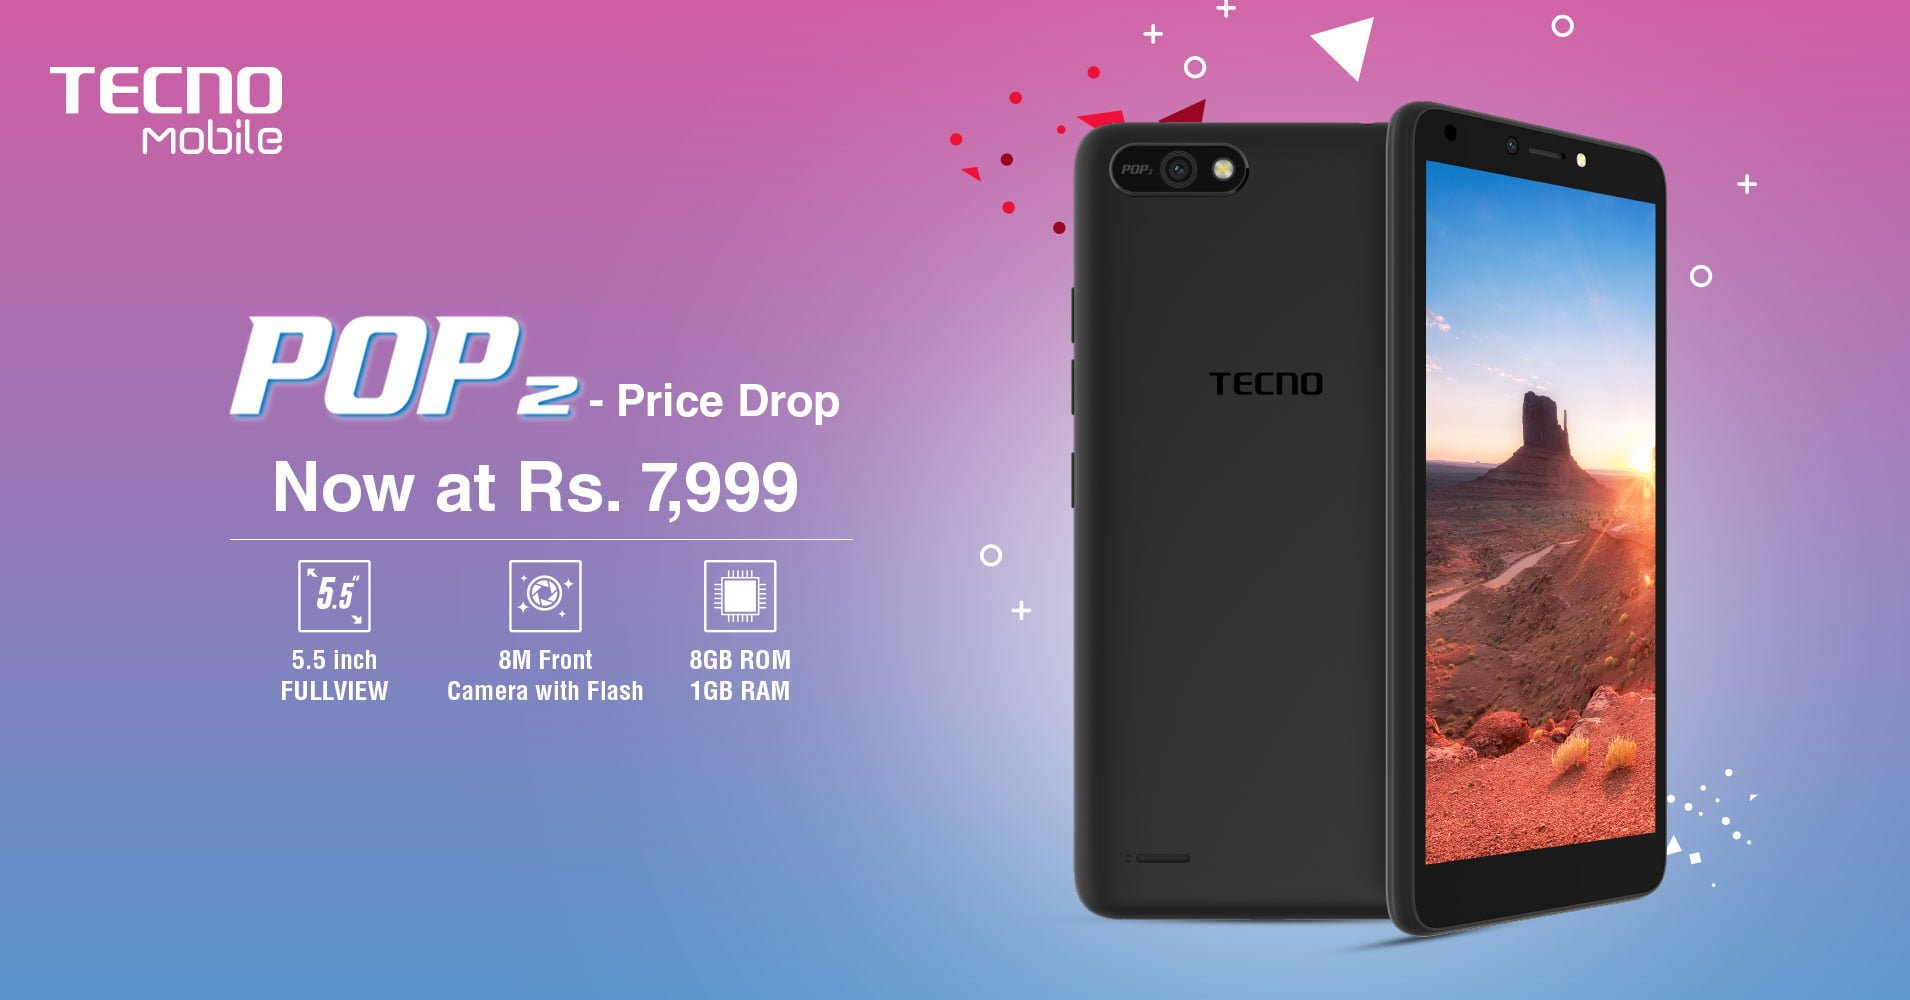 TECNO Mobile Has Reduced The Price Of Its Budget Phone Pop 2